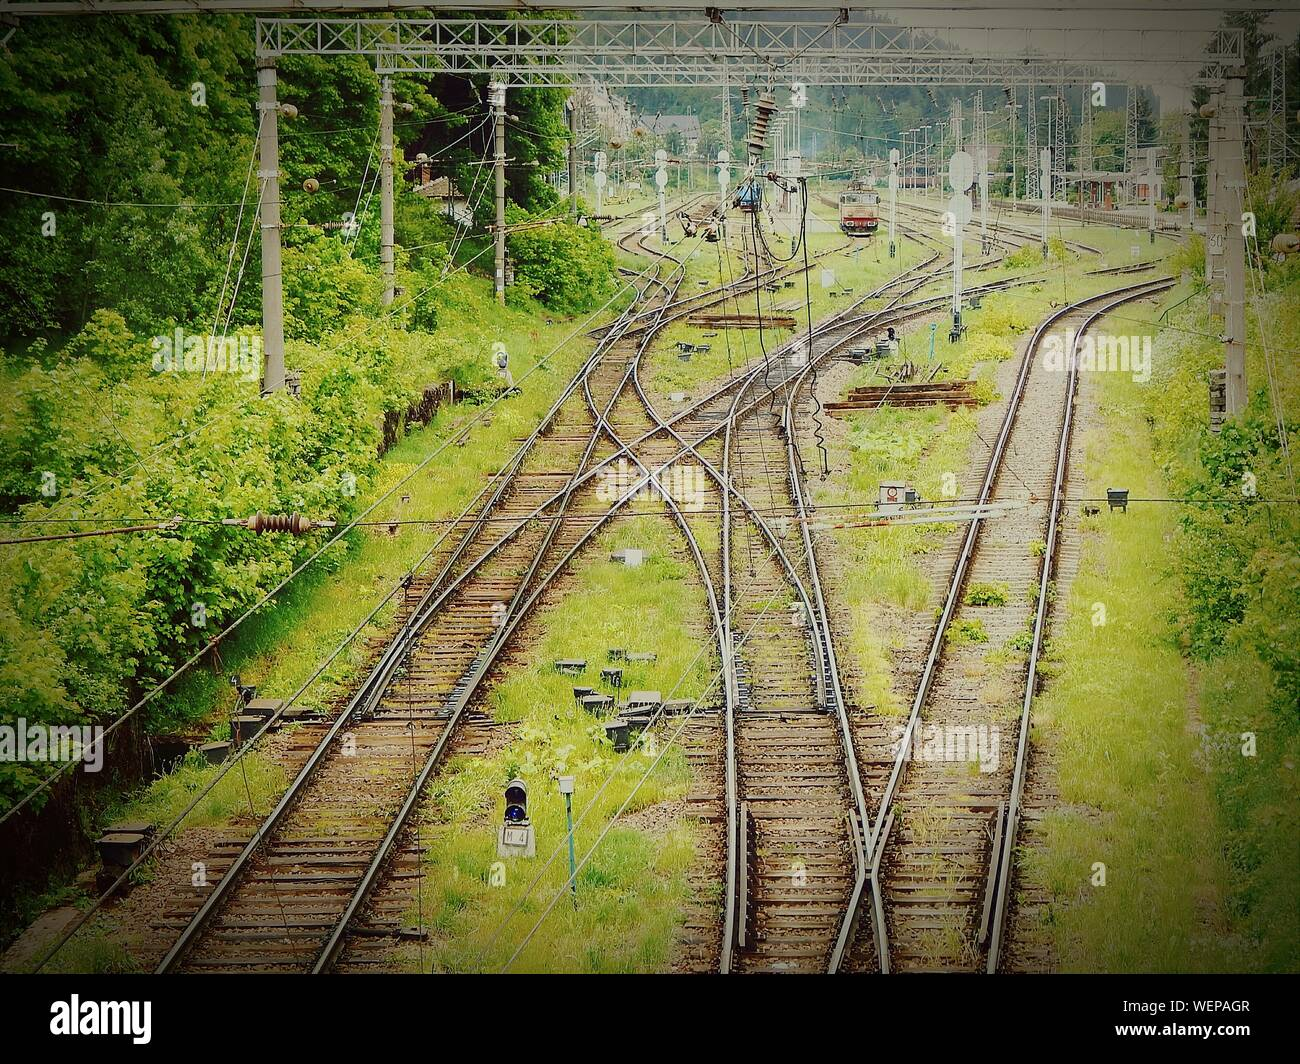 Railroad Tracks On Field By Trees Stock Photo